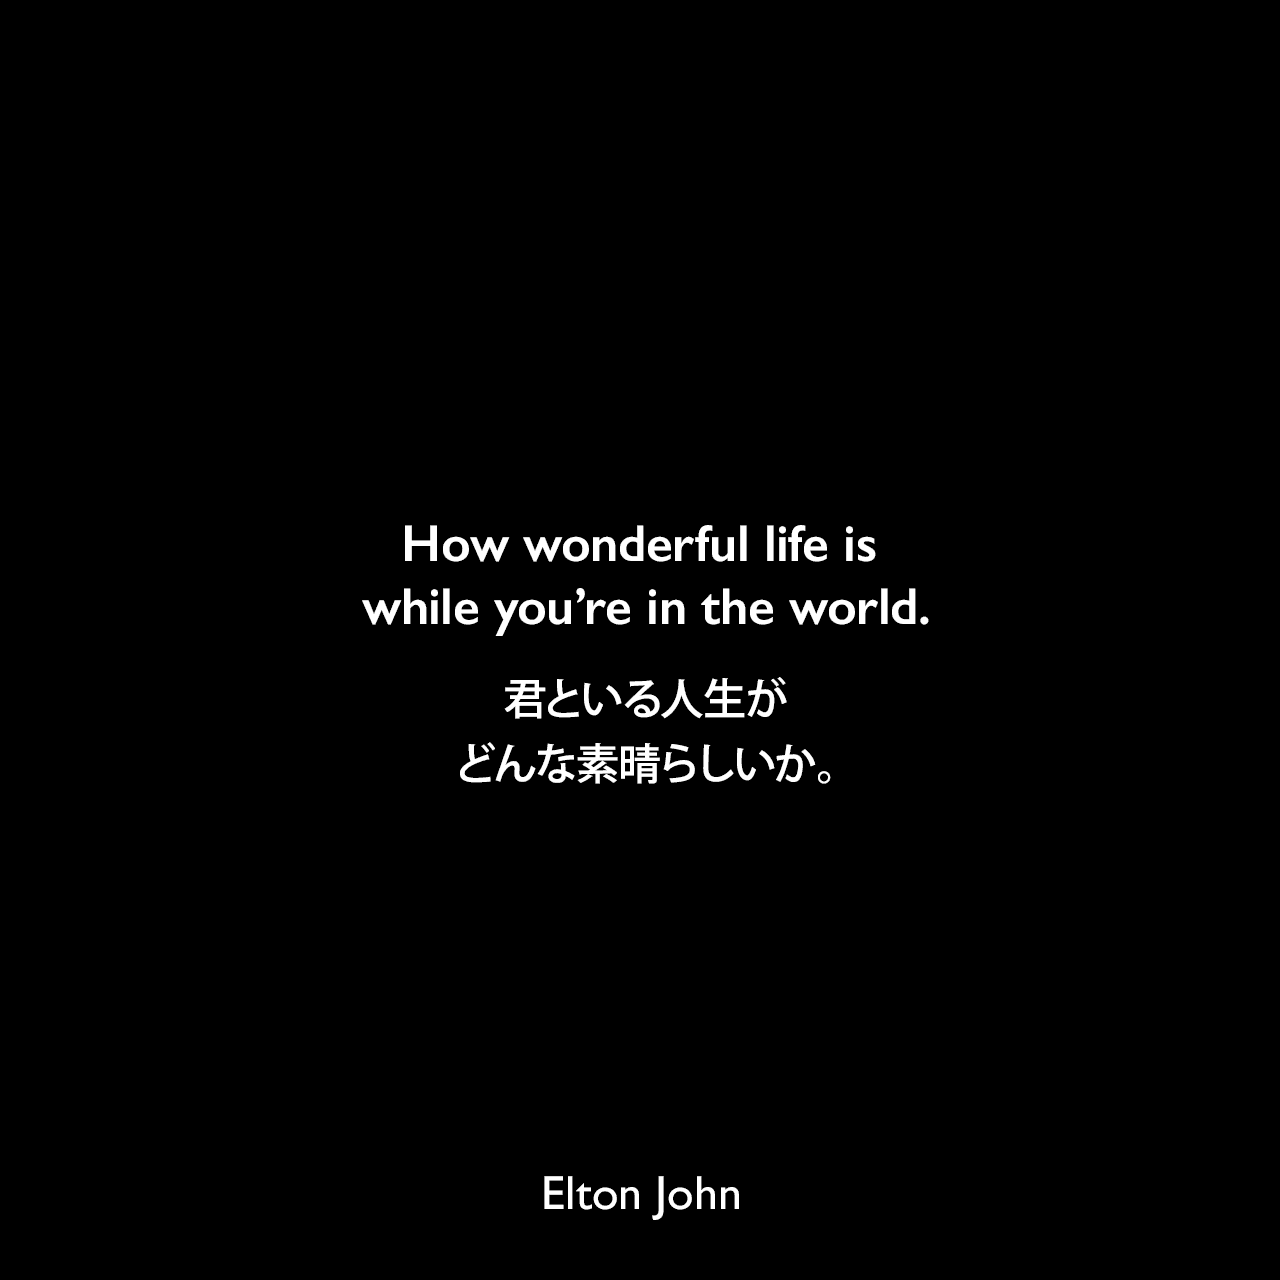 How wonderful life is while you're in the world.君といる人生がどんな素晴らしいか。-「僕の歌は君の歌(Your Song)」の 歌詞よりElton John